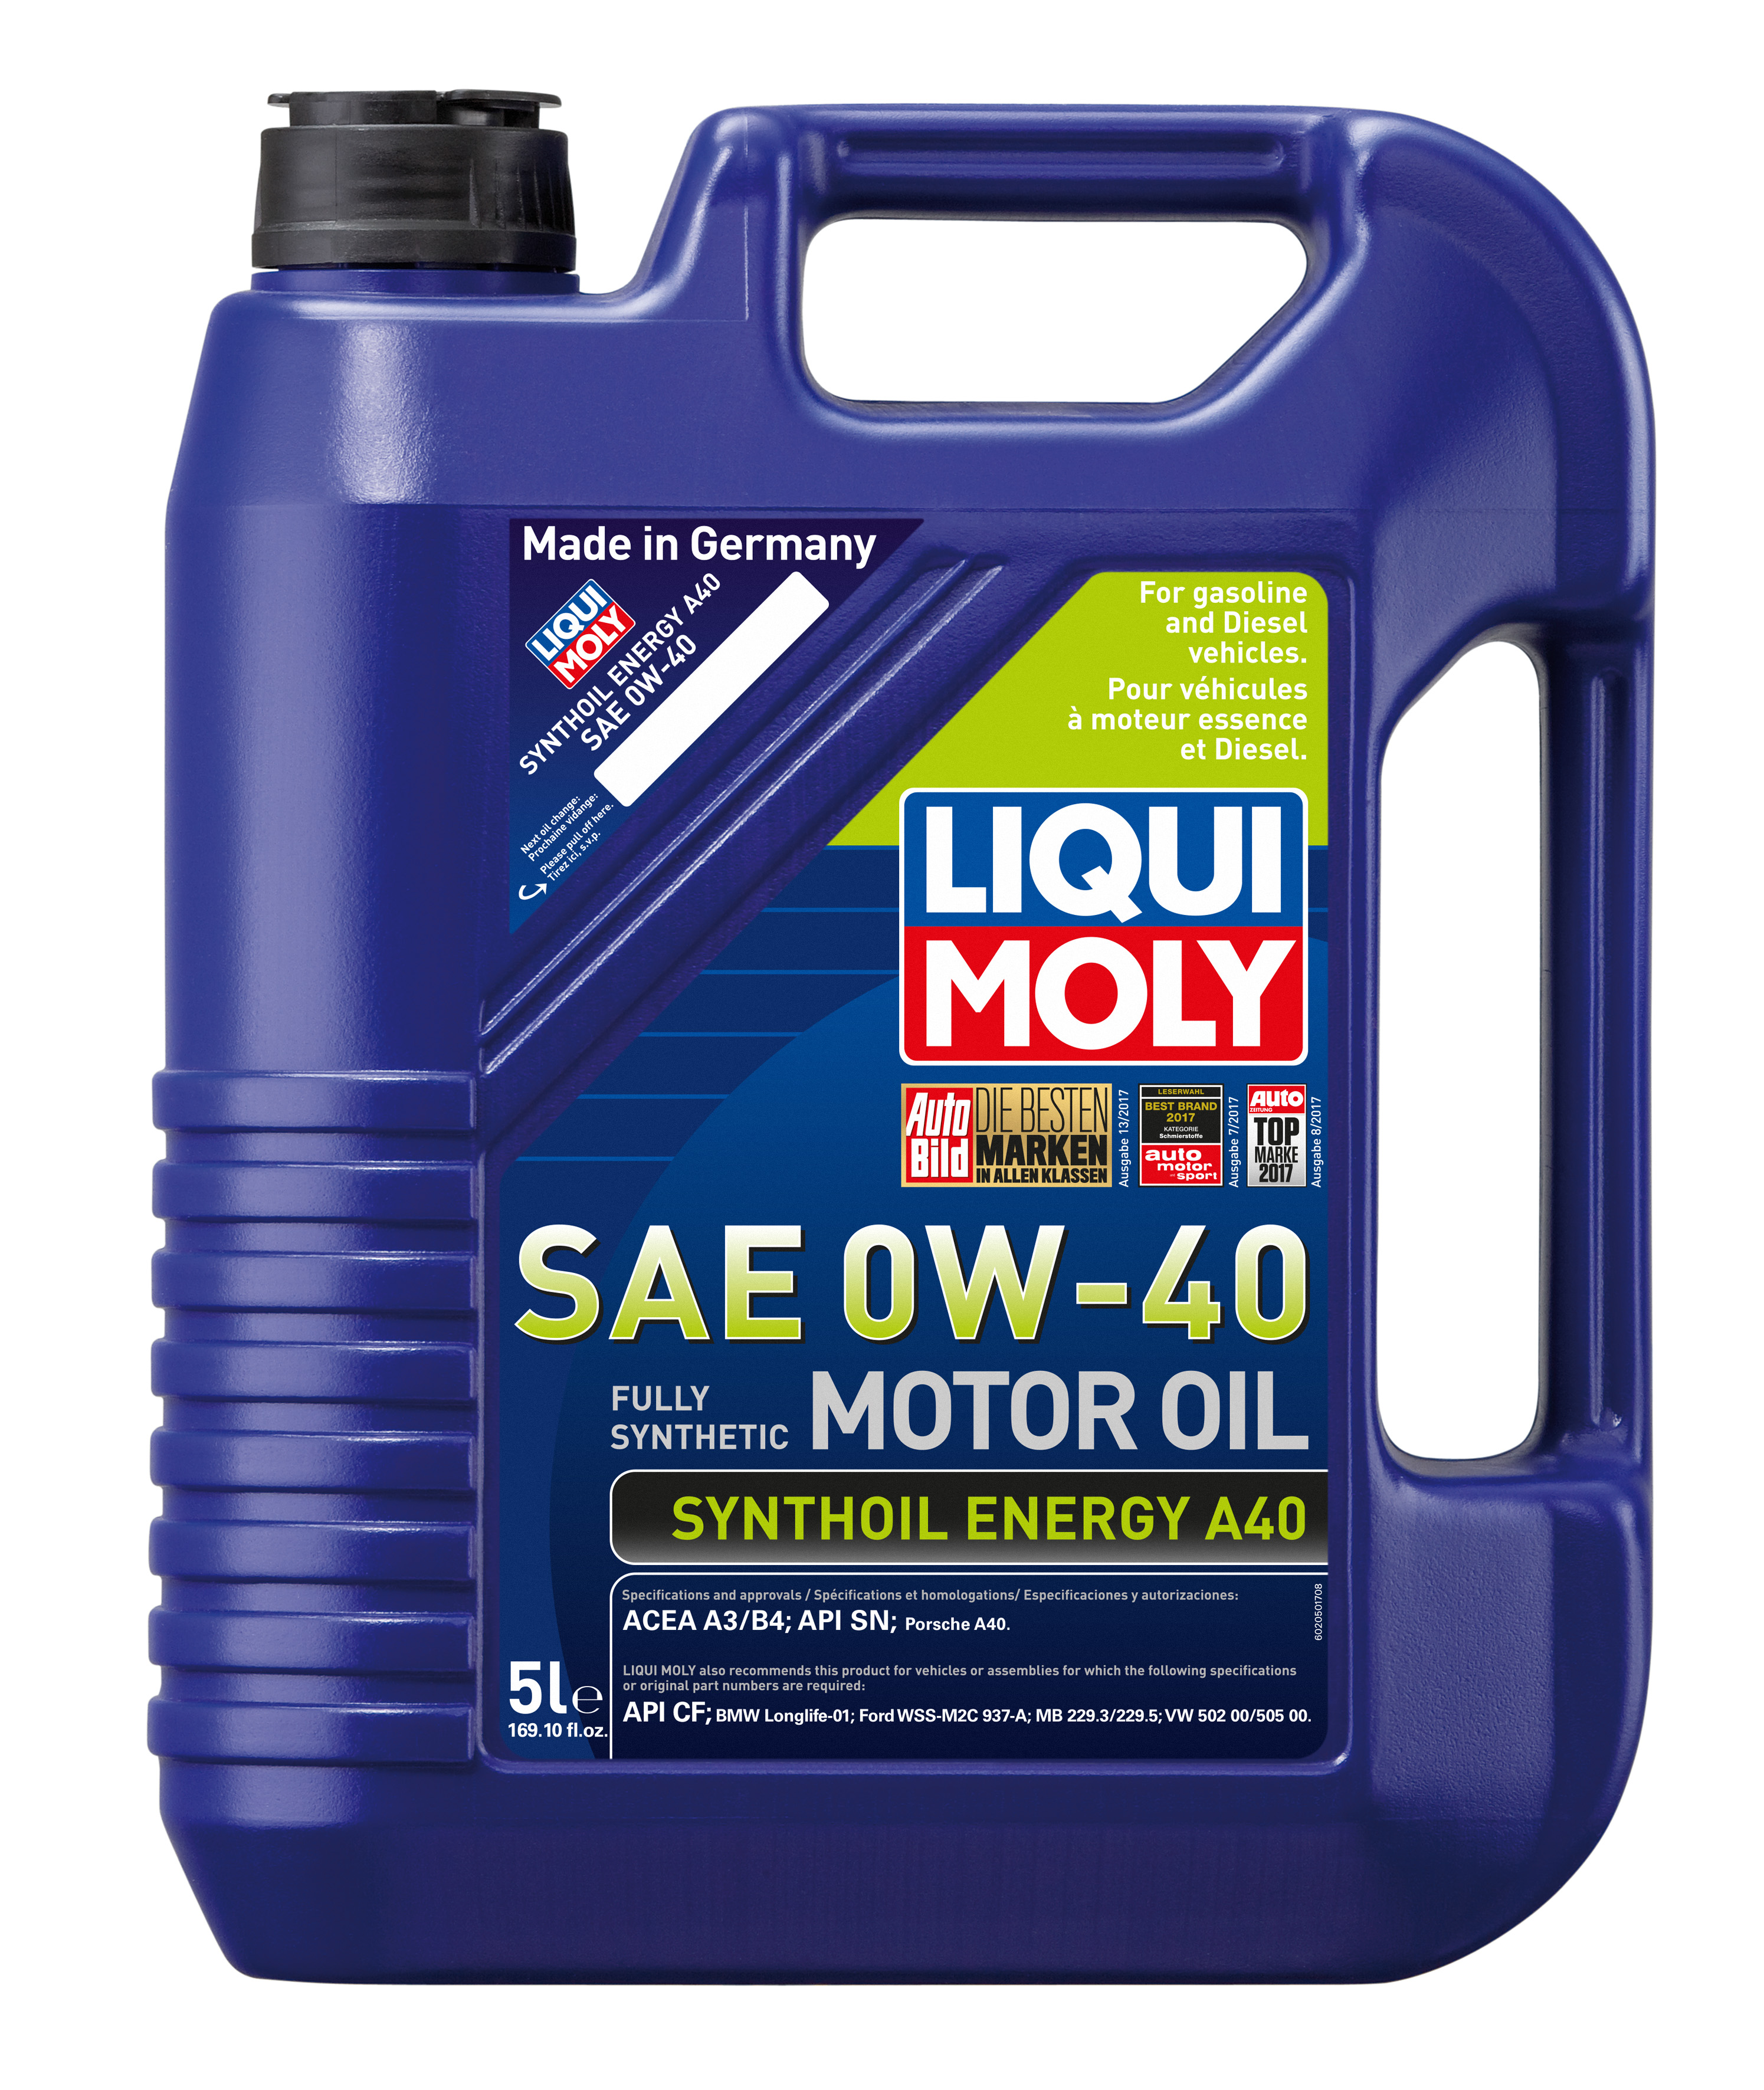 Liqui moly oil for porsche auto service world for What does sae mean on motor oil